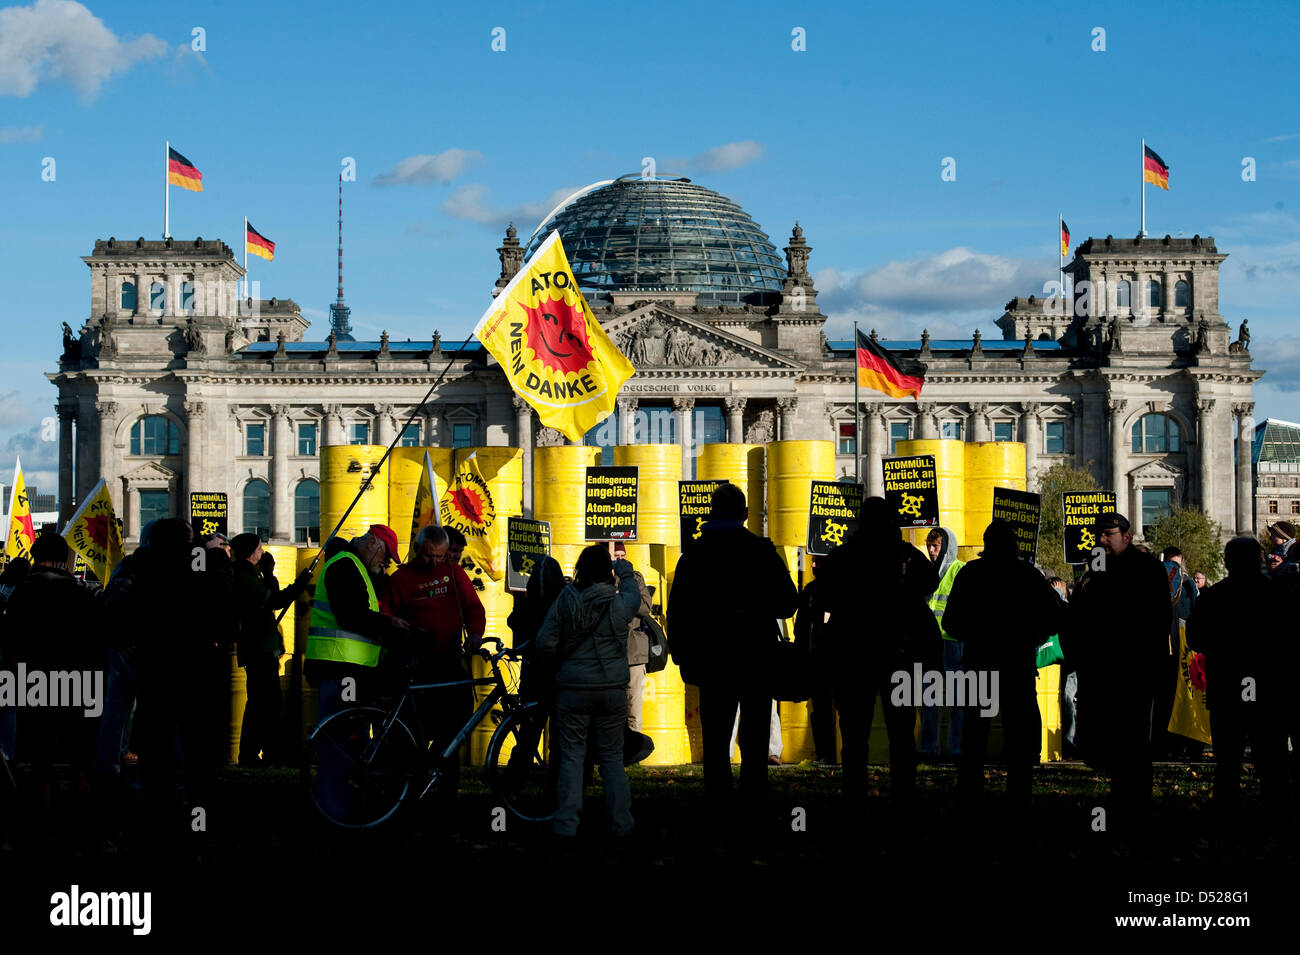 Anti-nuclear activists protest against a CASTORtransport in Berlin, Germany, 25 October 2010. Campaign network Stock Photo